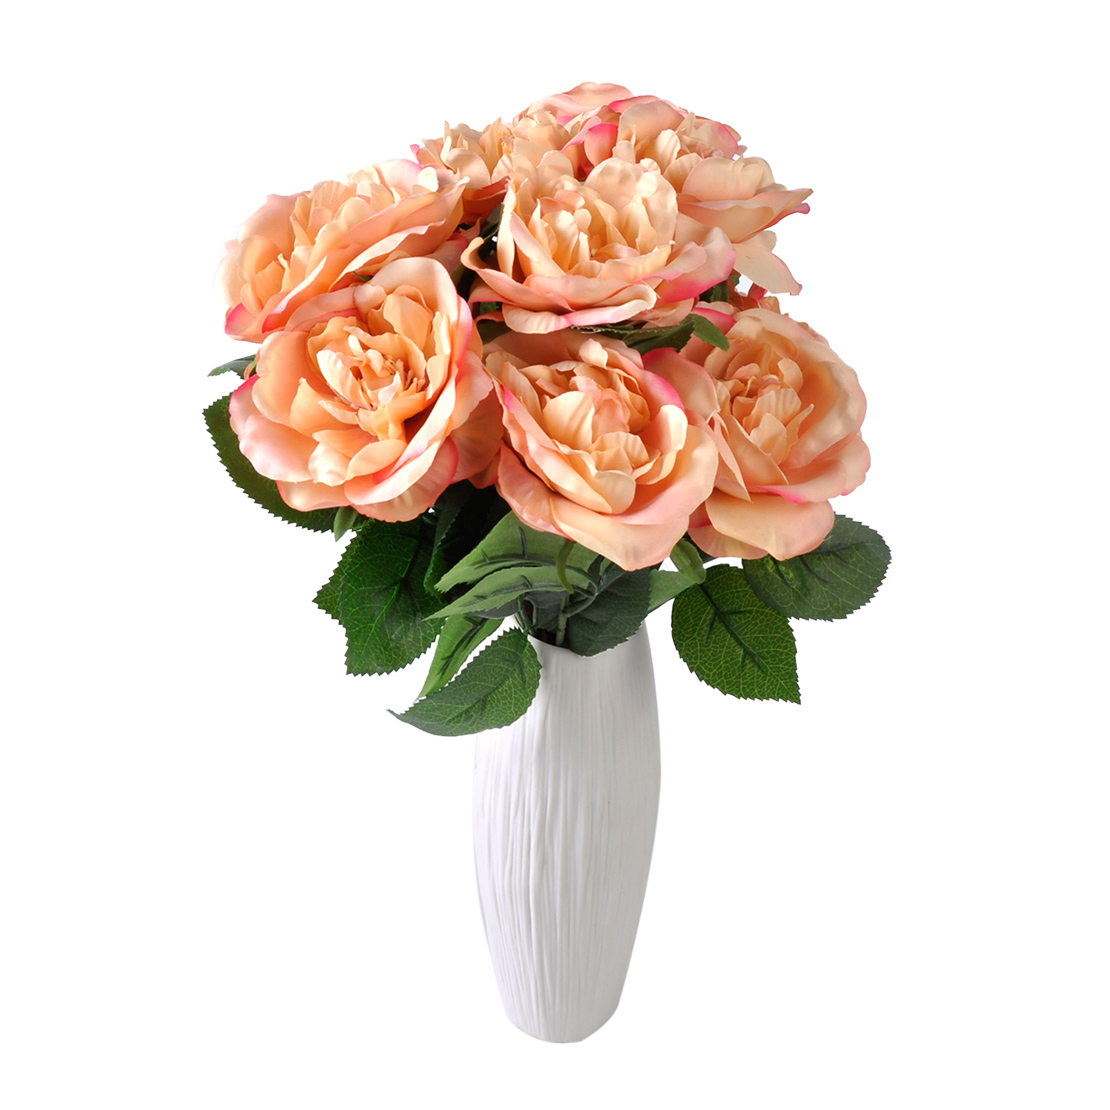 10 Head Rose Flowers Latex Real Touch for Wedding Home Decor Bouquet Party